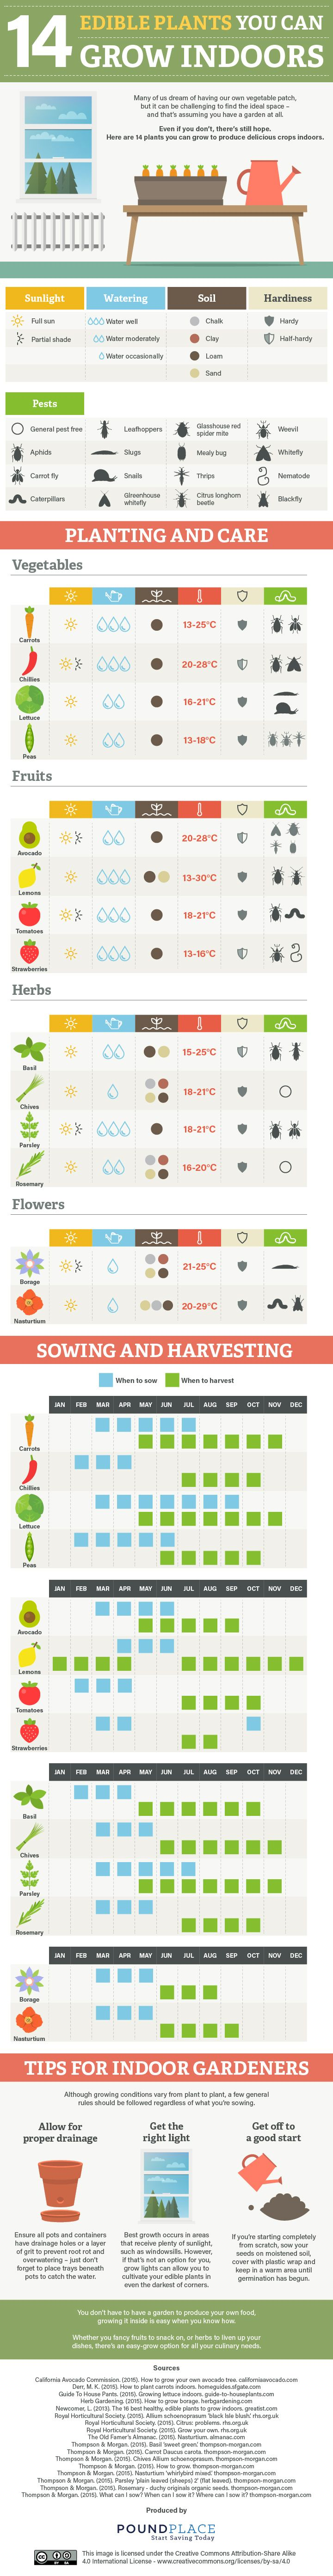 14 Edible Plants You Can Grow Indoors #Infographic